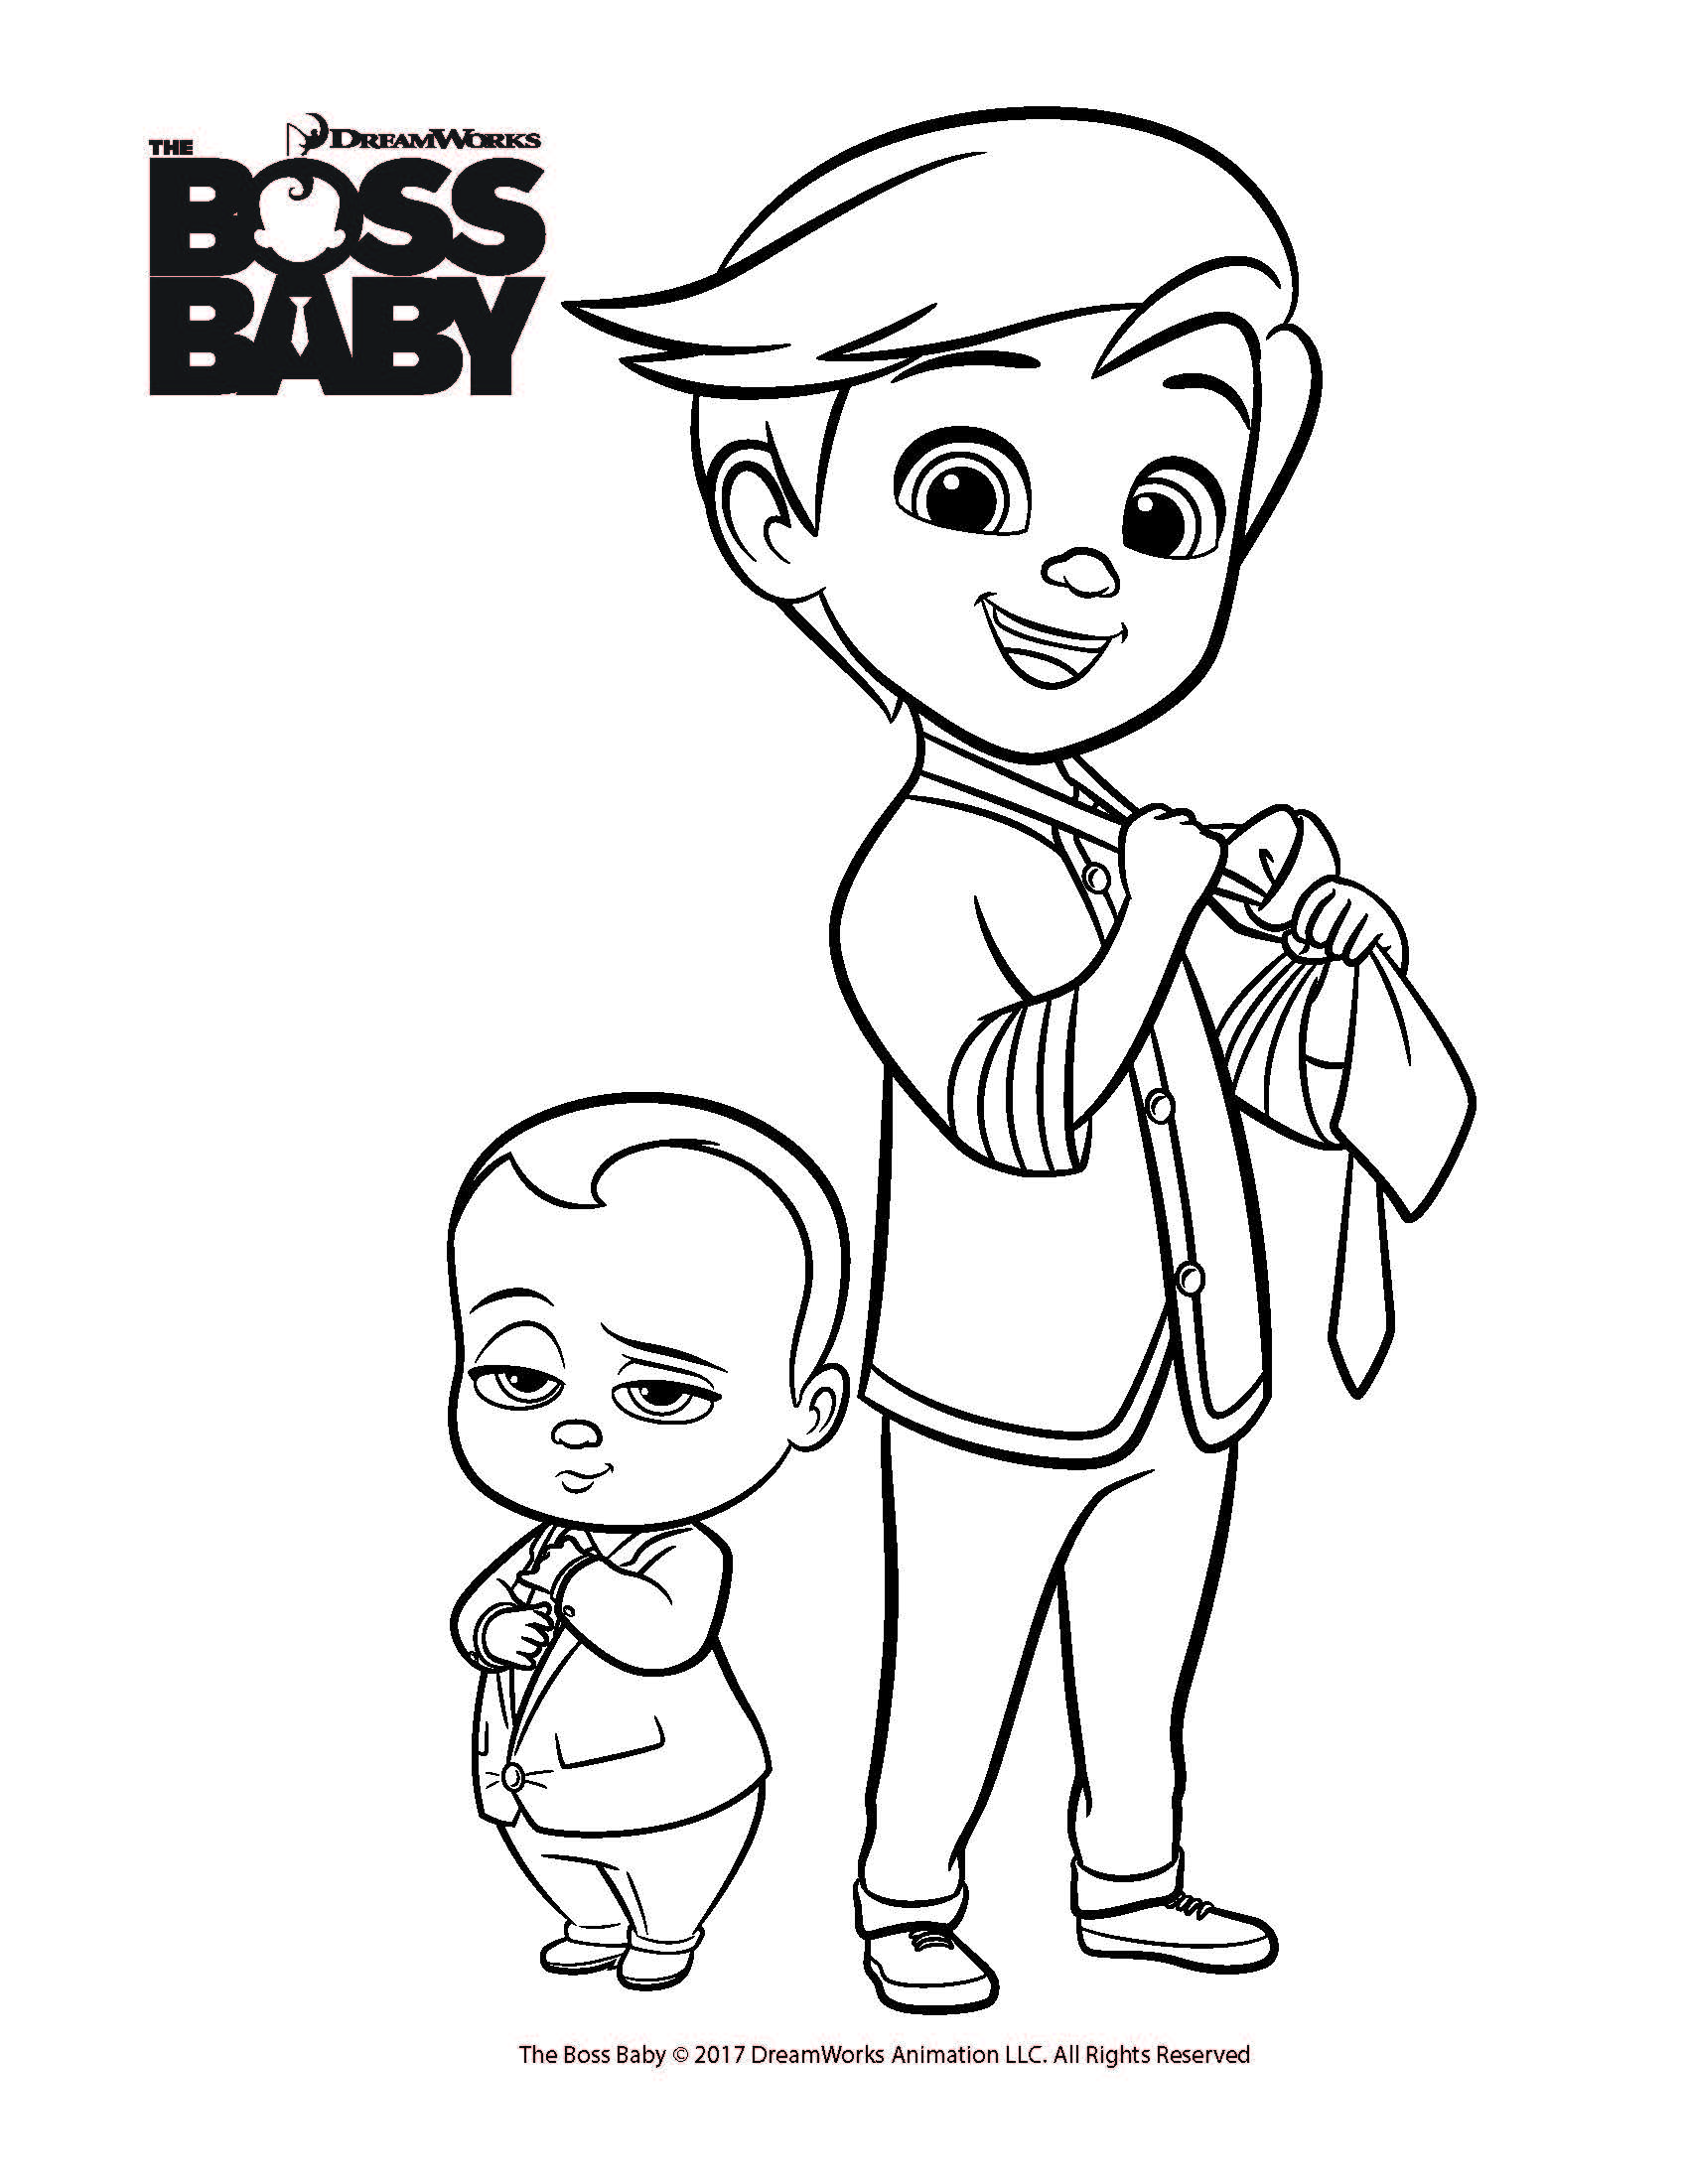 Boss Baby Printable Coloring Sheet